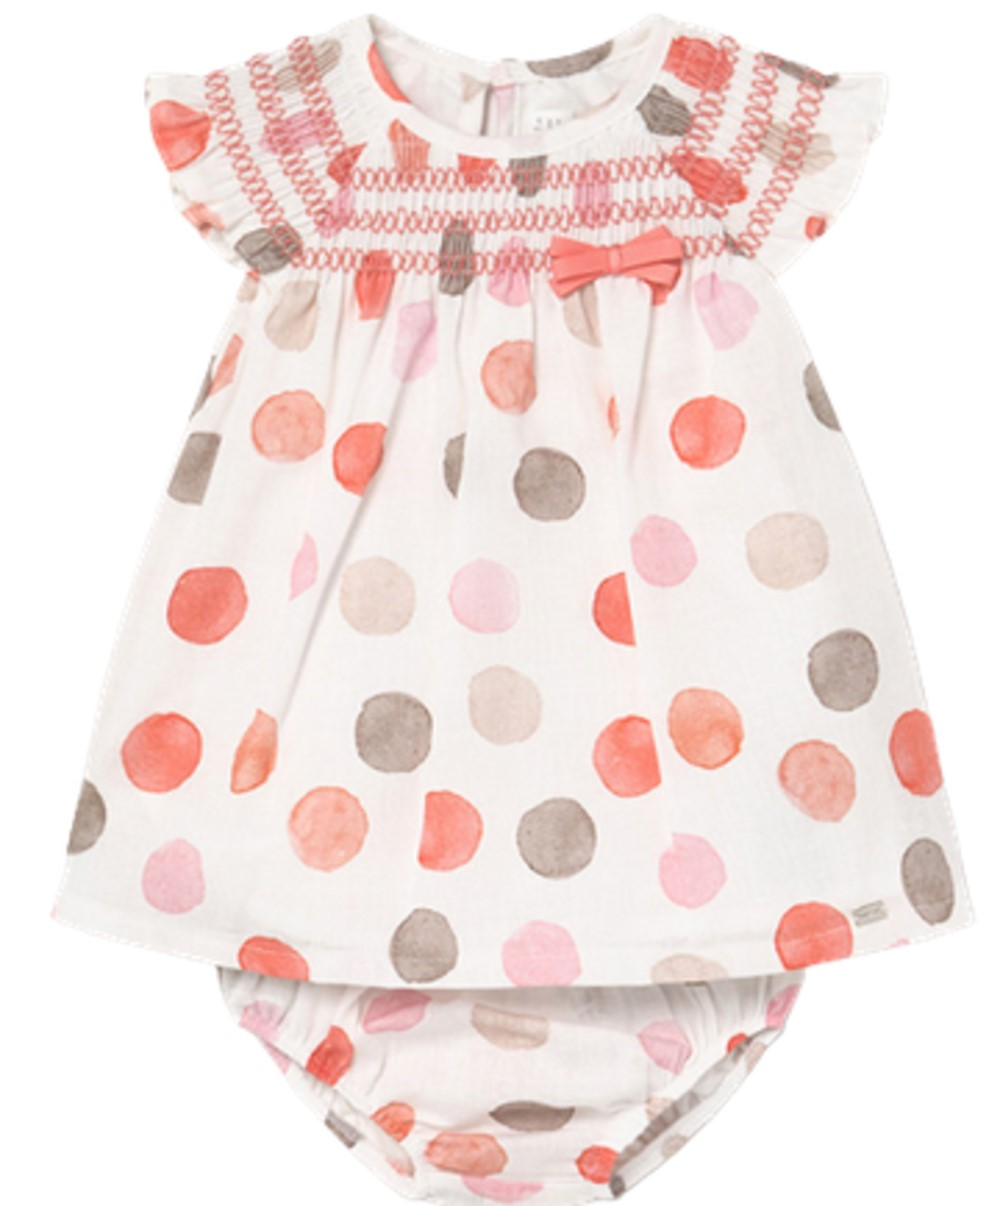 MAYORAL BABY GIRLS SORBET LINEN DRESS WITH POLKA DOTS AND MATCHING PANTIES